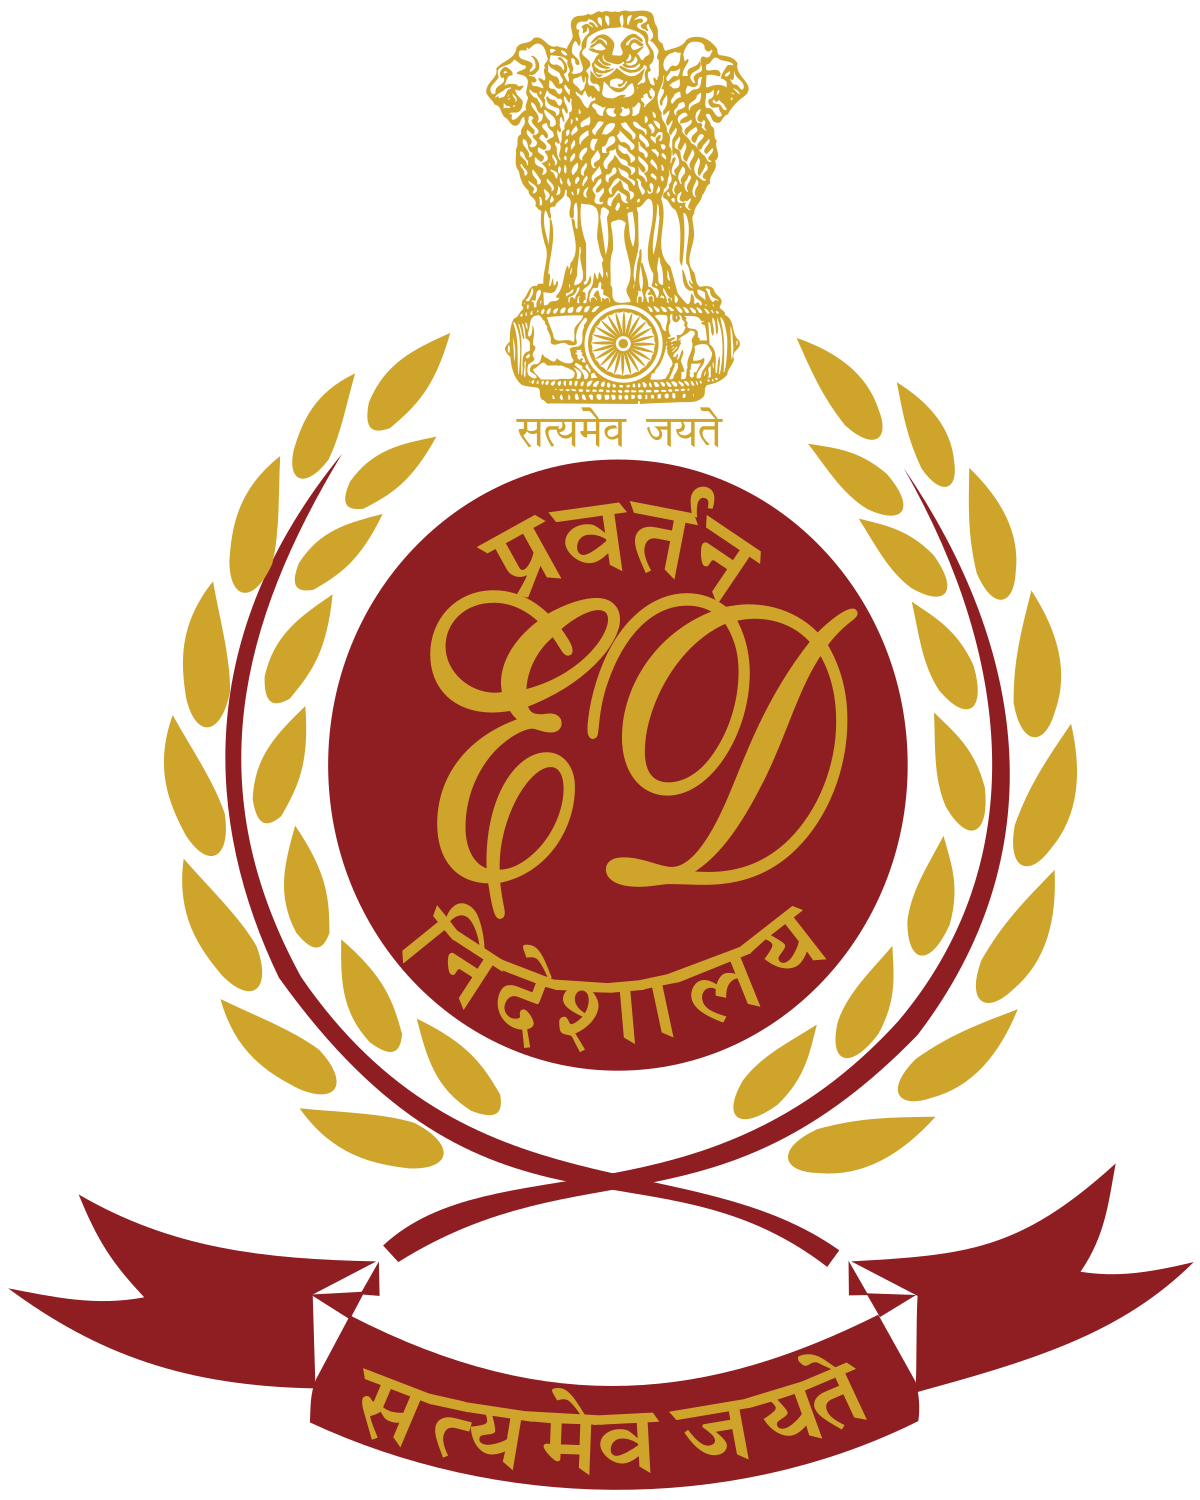 The Directorate of Enforcement